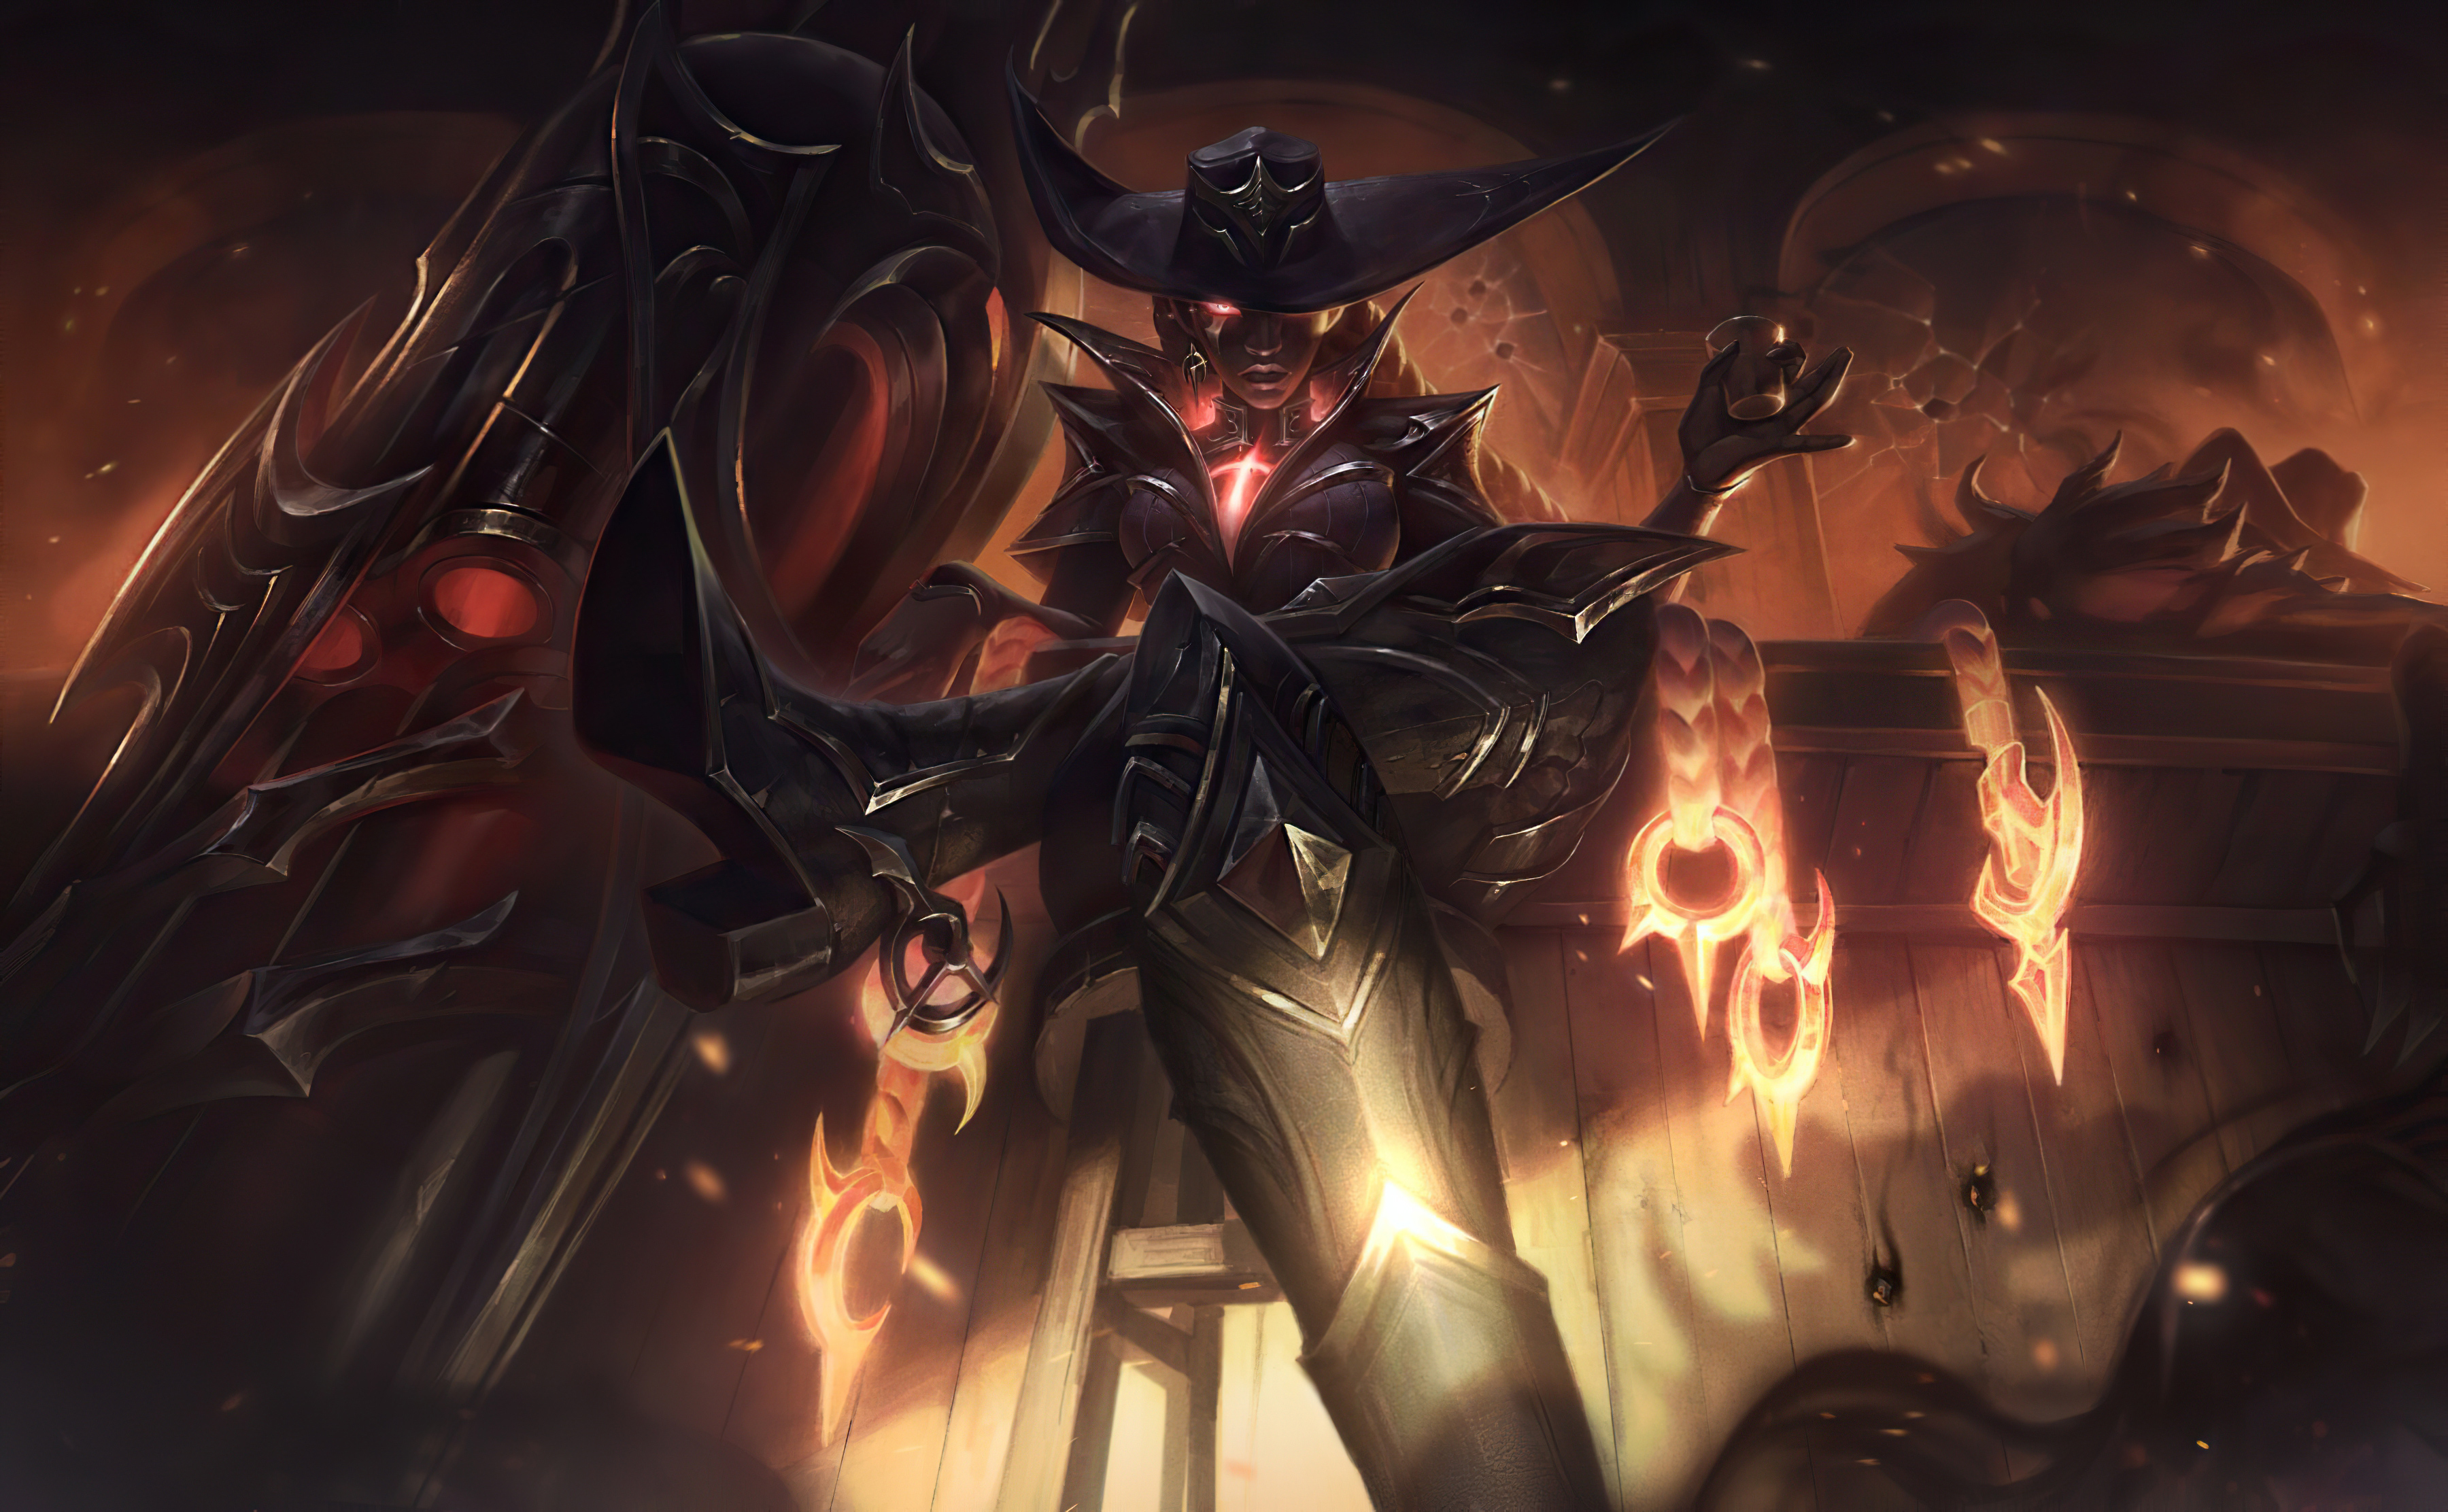 High Noon Senna League Of Legends Hd Games 4k Wallpapers Images Backgrounds Photos And Pictures